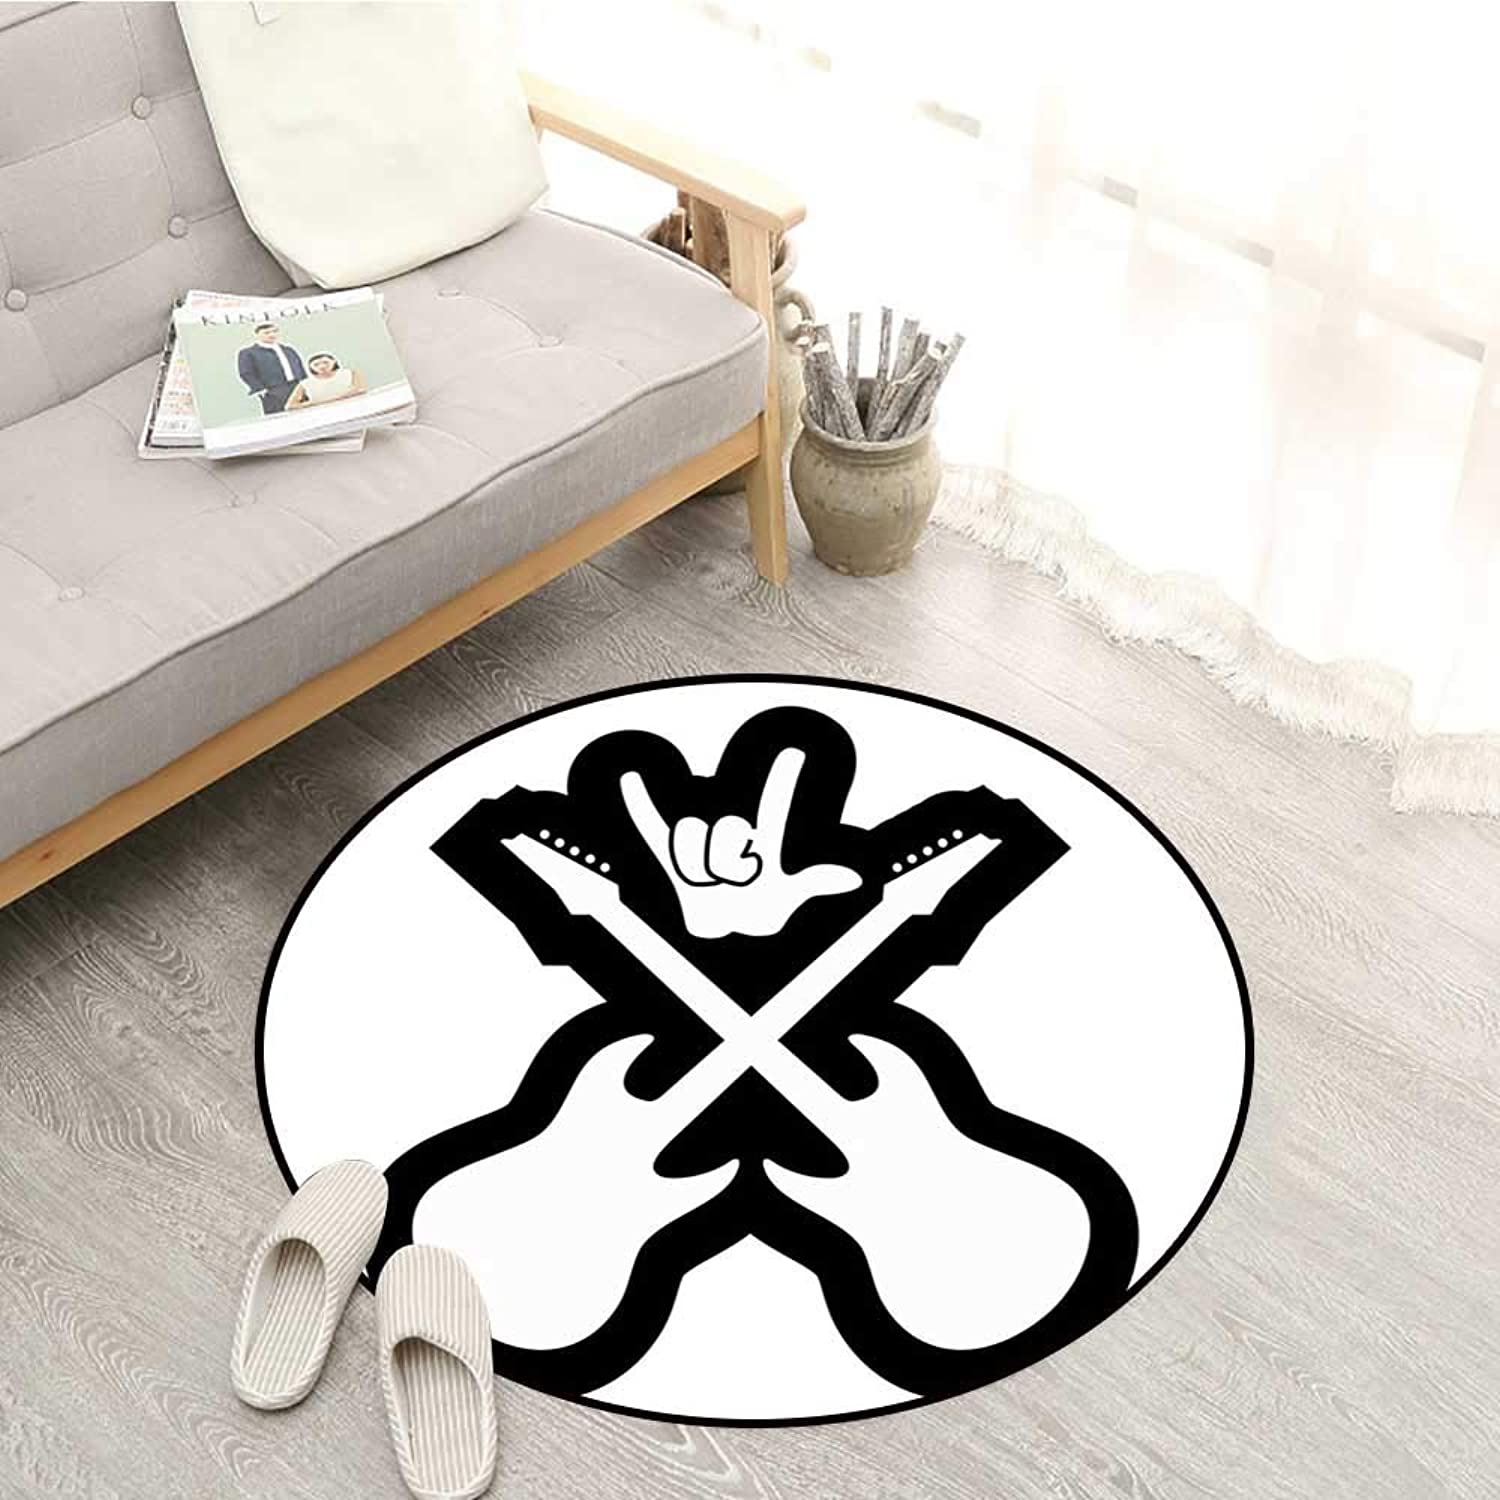 Rock Music Living Room Round Rugs Doodle Drawing Style Guitars Rock Sign Abstract Monochrome Instrument Design Sofa Coffee Table Mat 4'3  Black White